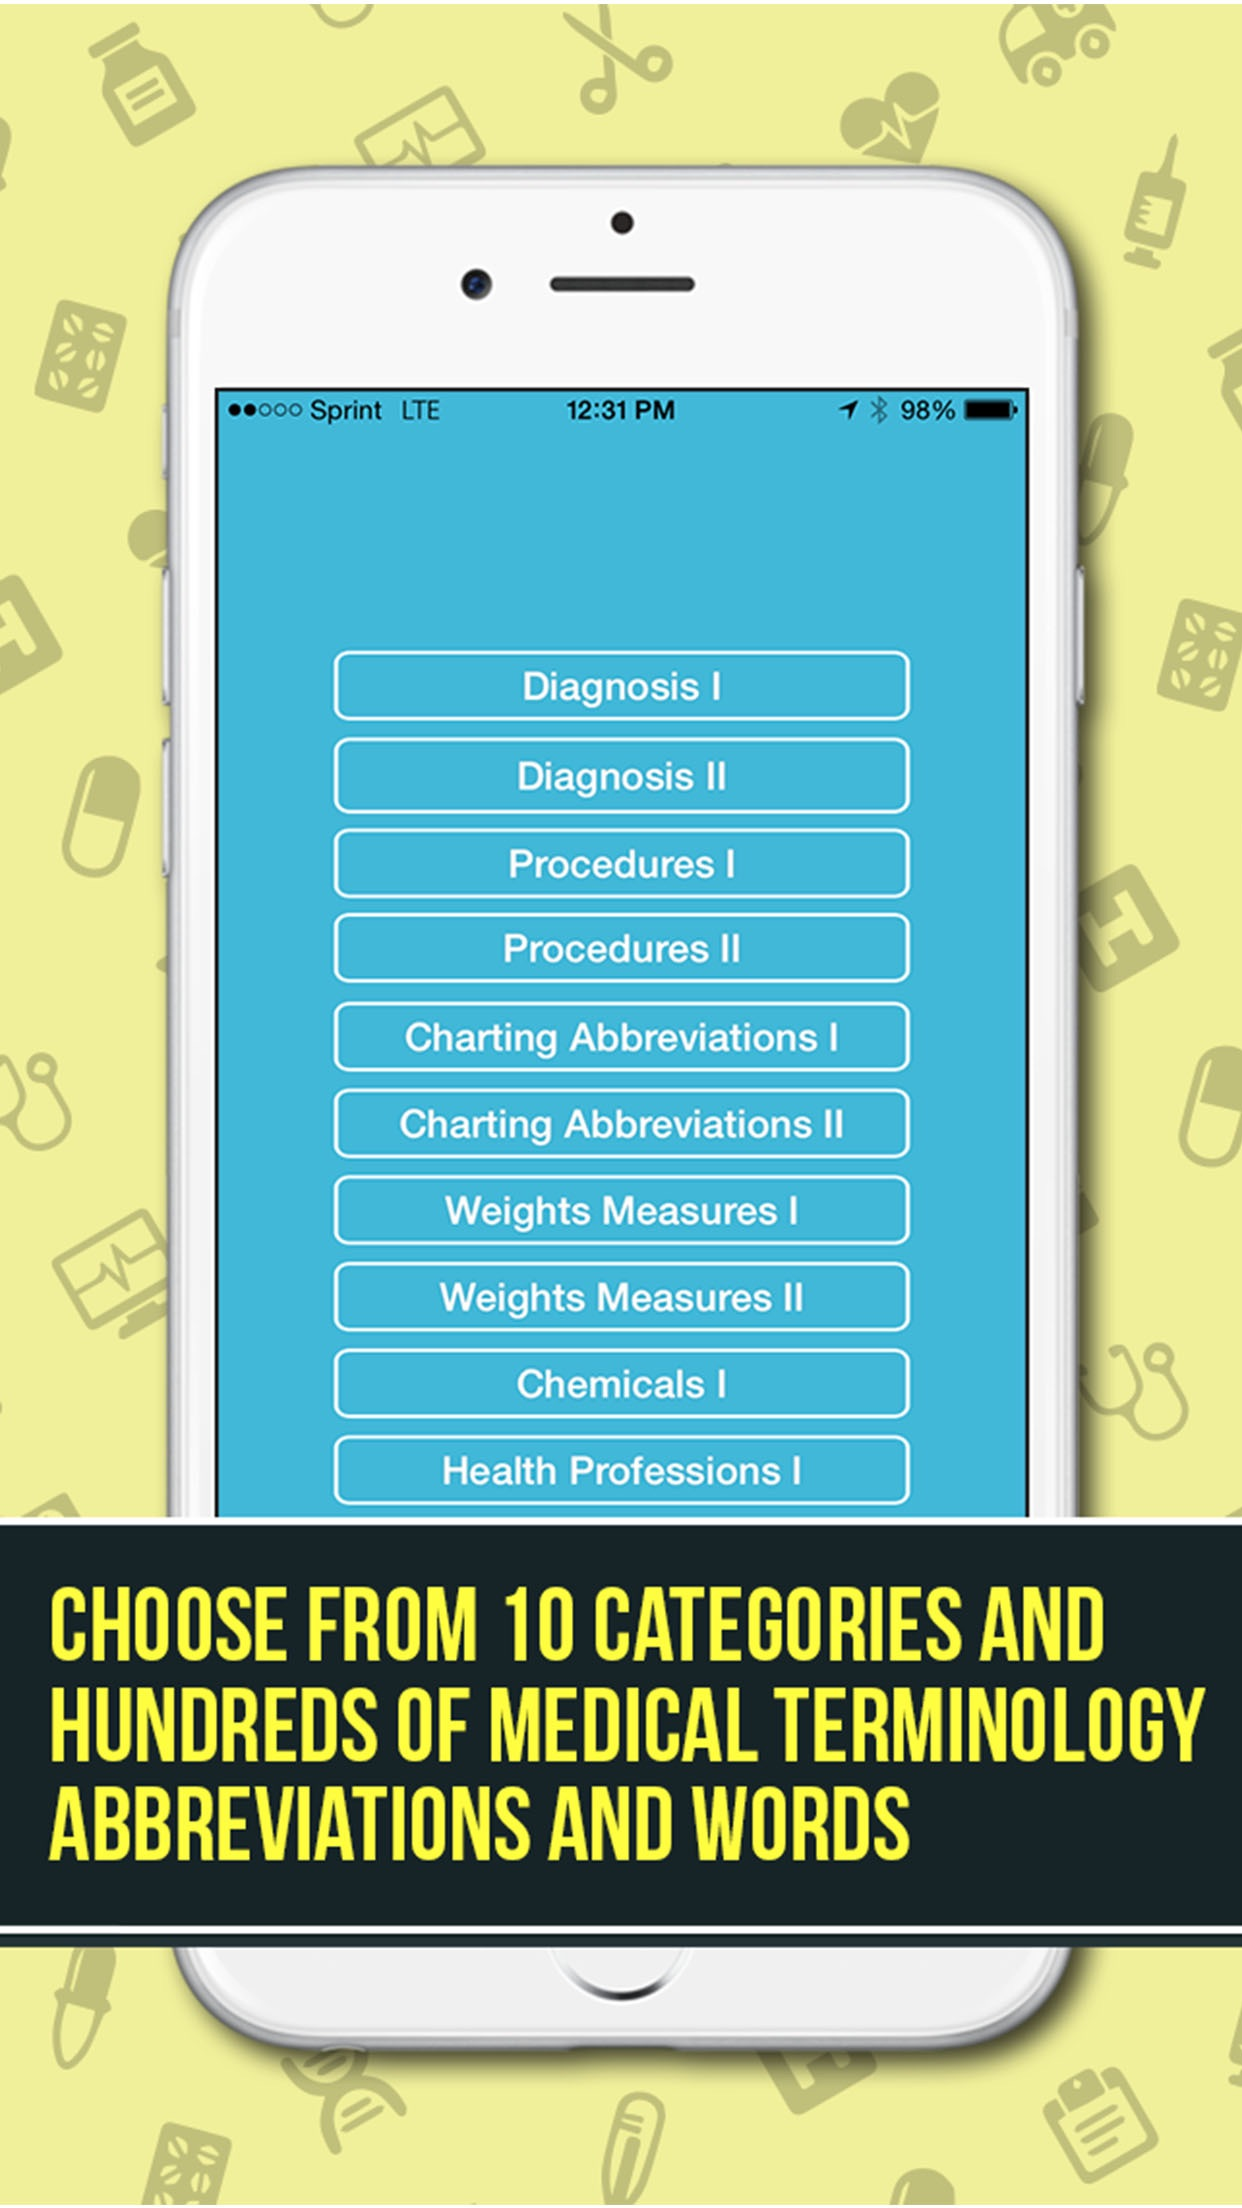 Guess The Medical Terminology - A Word Game And Quiz For Students, Nurses, Doctors and Health Professionals Screenshot